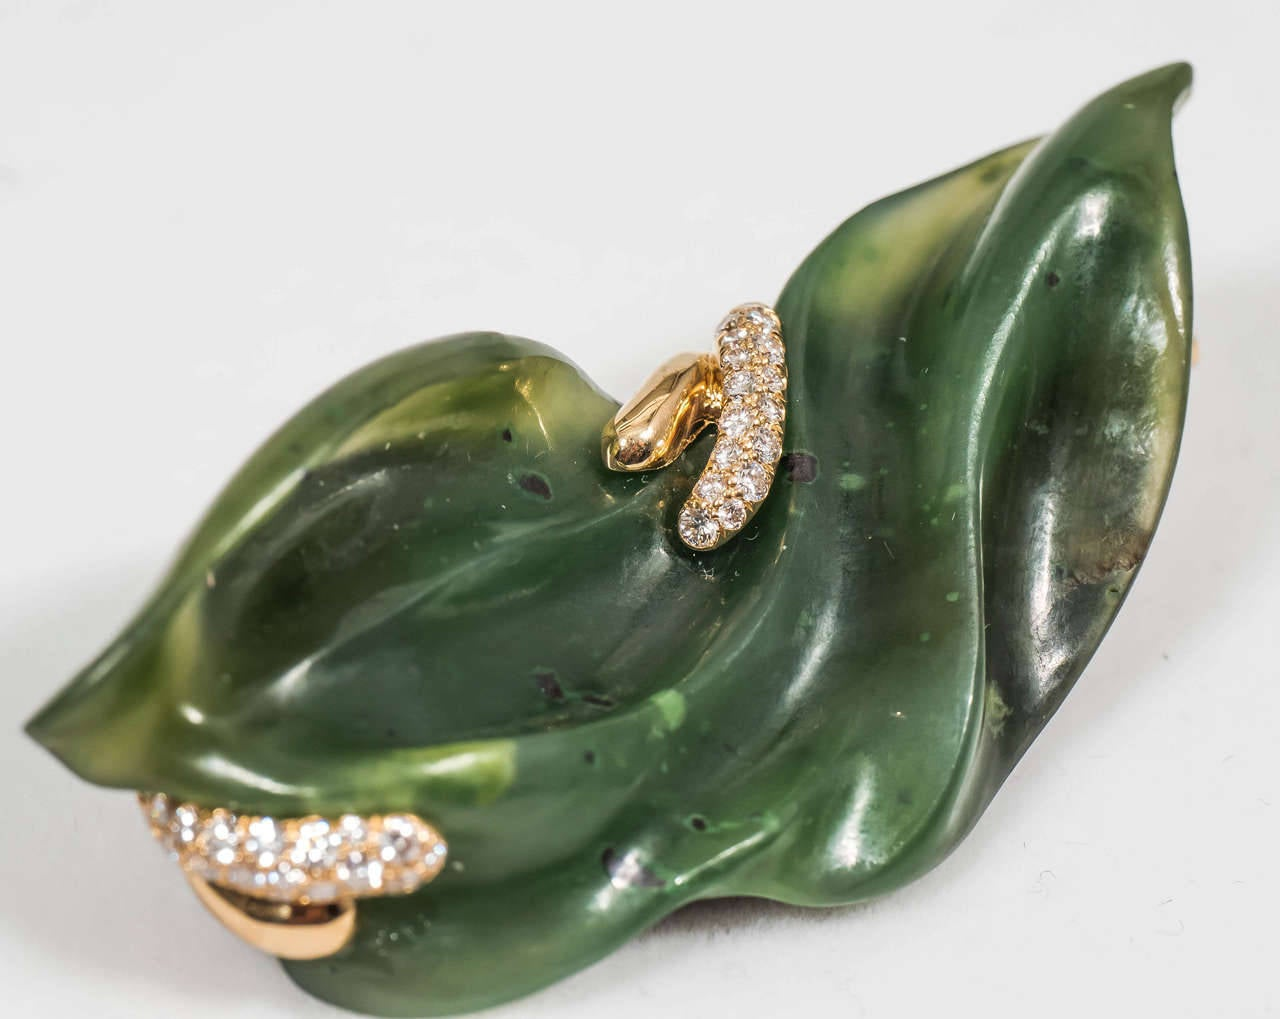 A hand-carved nephrite jade brooch accentuated with 18K yellow gold and 44 VS-F-G white diamonds. The back of the brooch is made of blackened sterling silver.   Internationally award winning designer Naomi Sarna creates gem carvings and jewels of